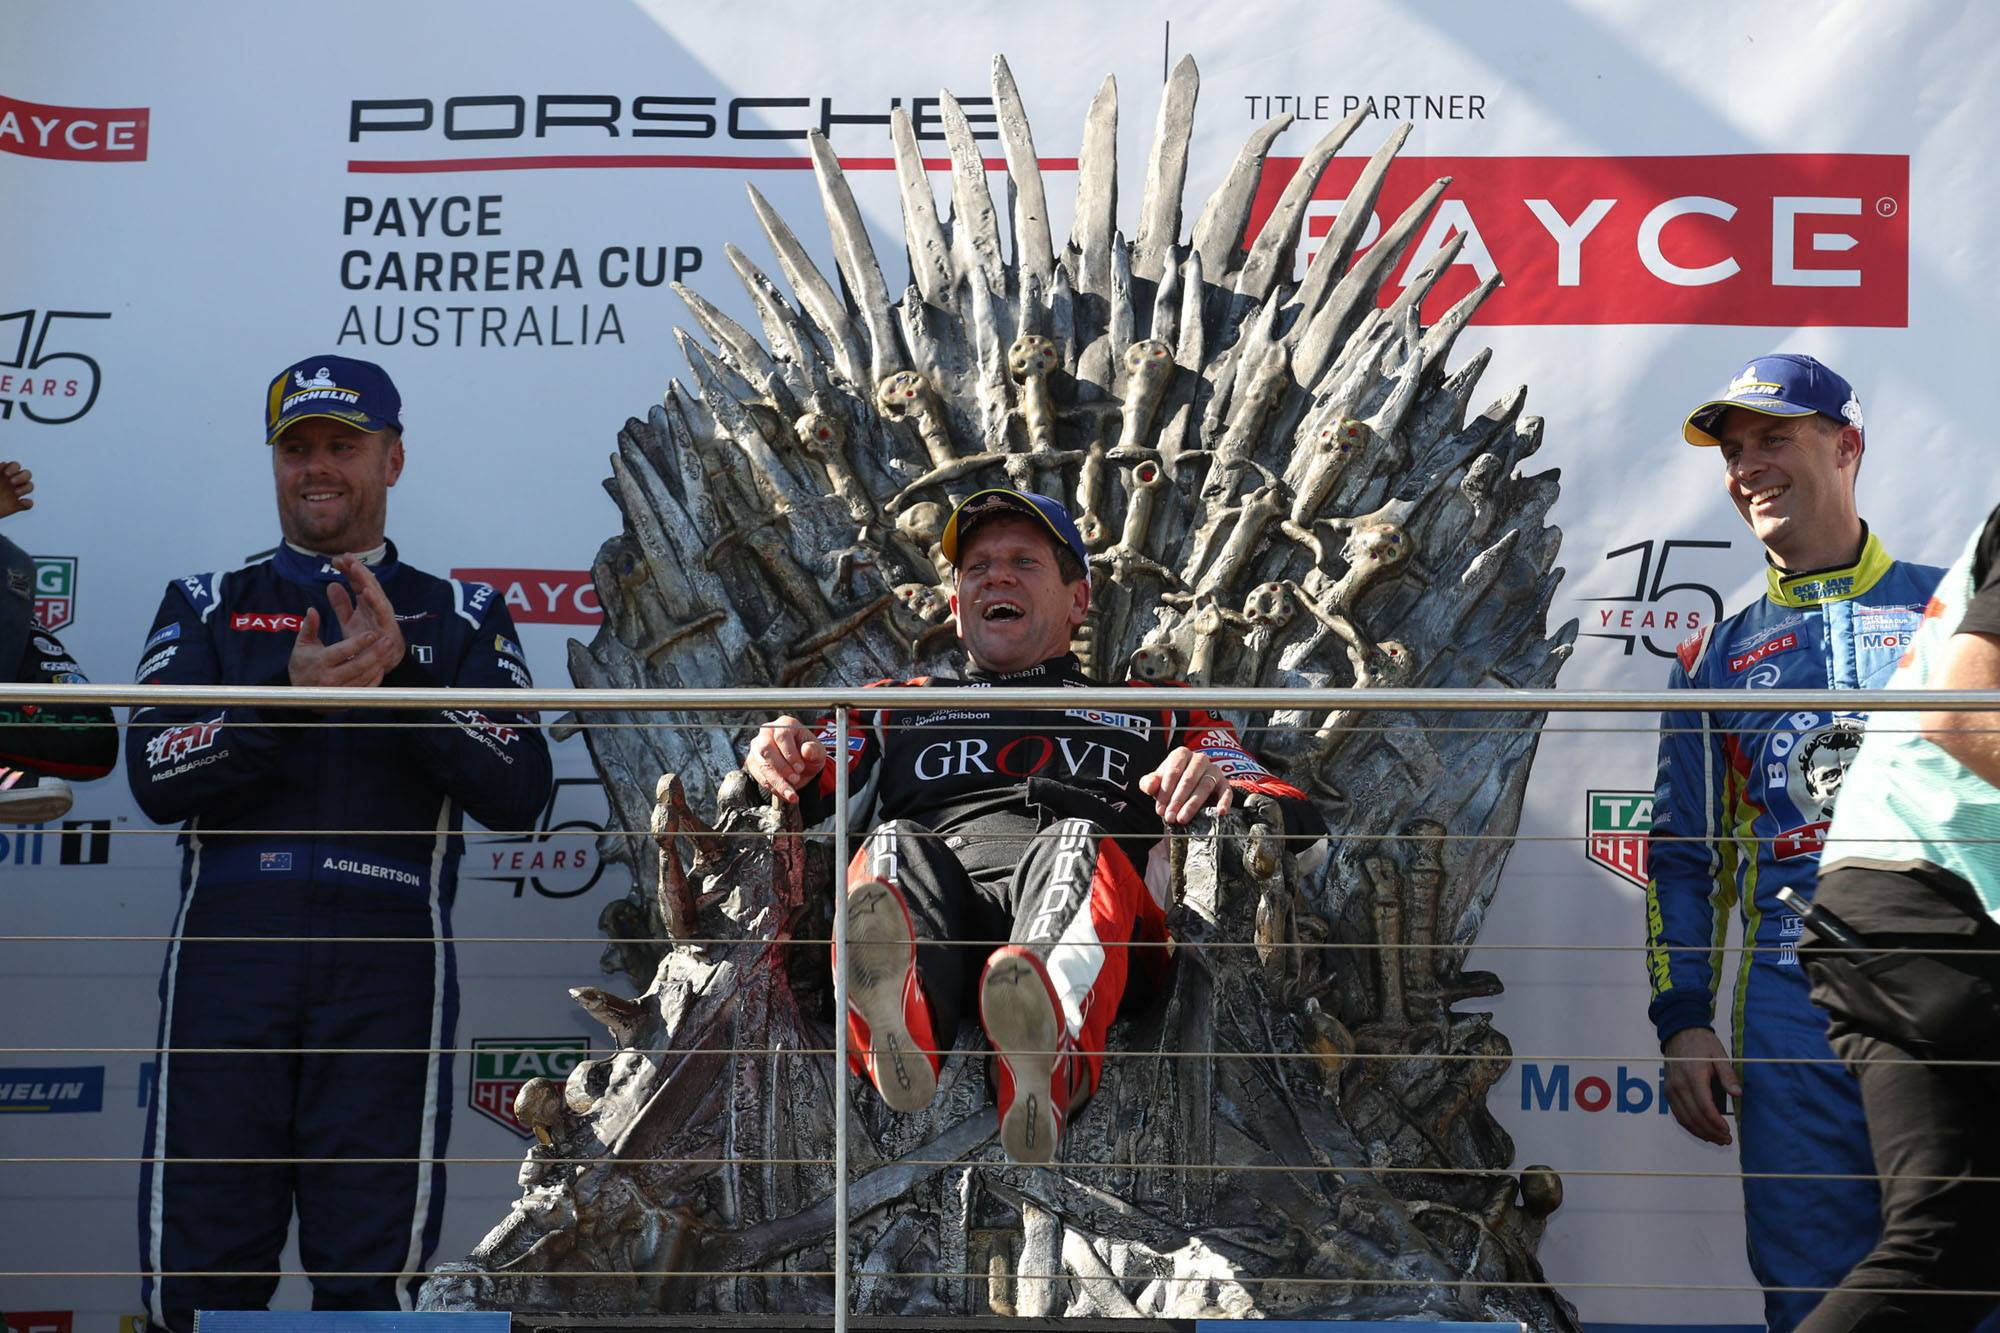 Stephen Grove got to sit on the throne for the special Game of Thrones round.